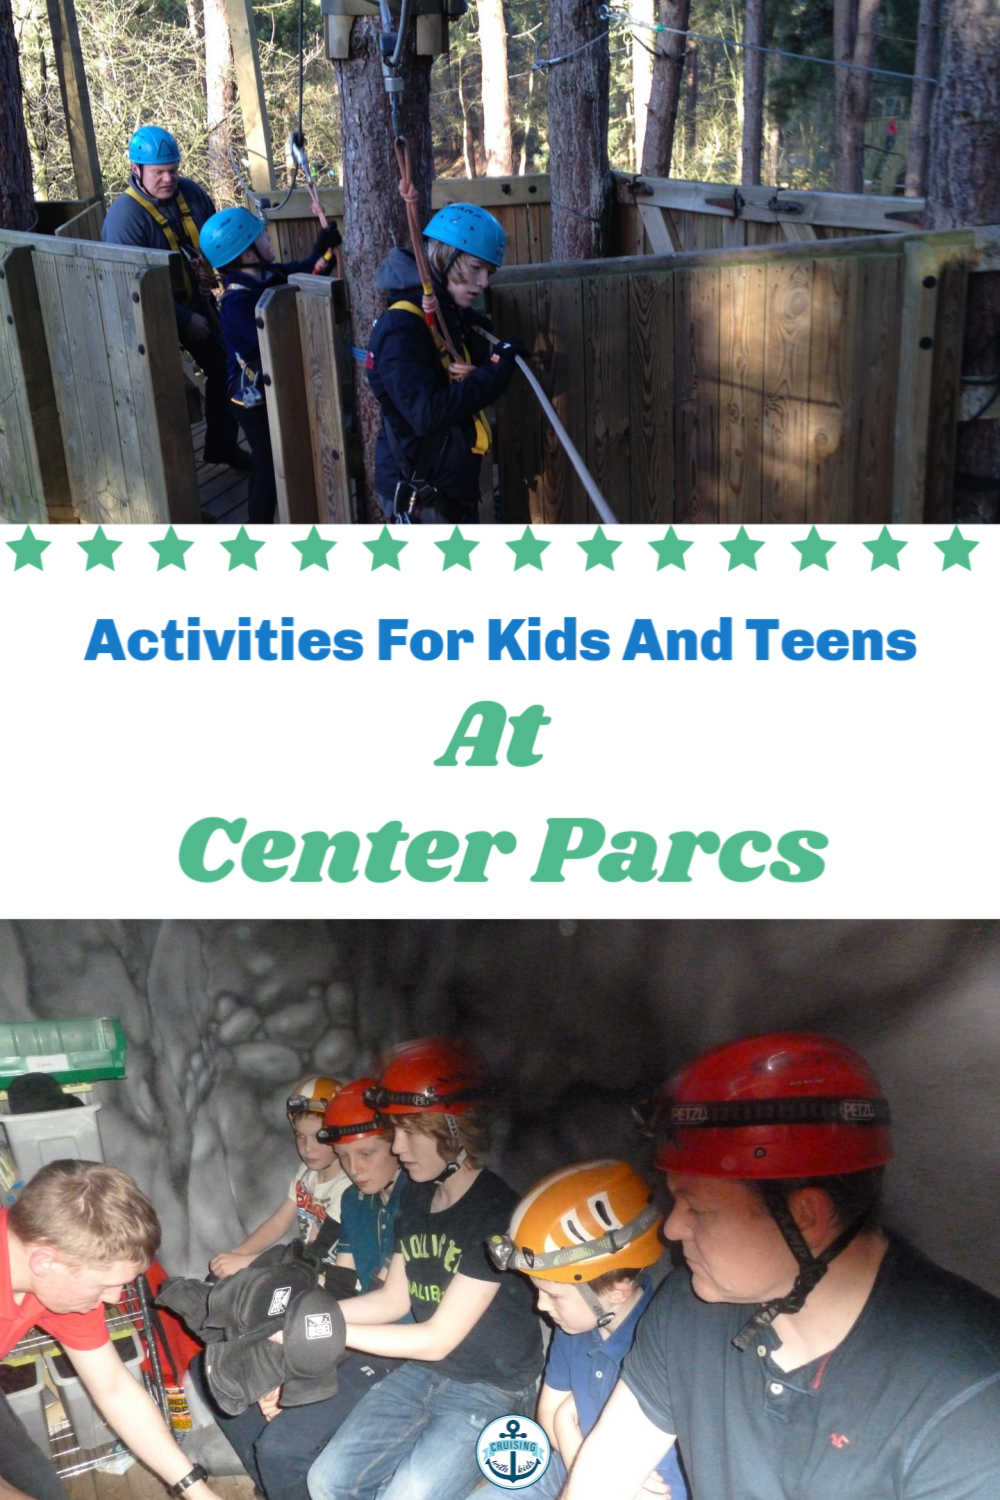 The ultimate guide to Activities For Kids, Teens And Families At Center Parcs